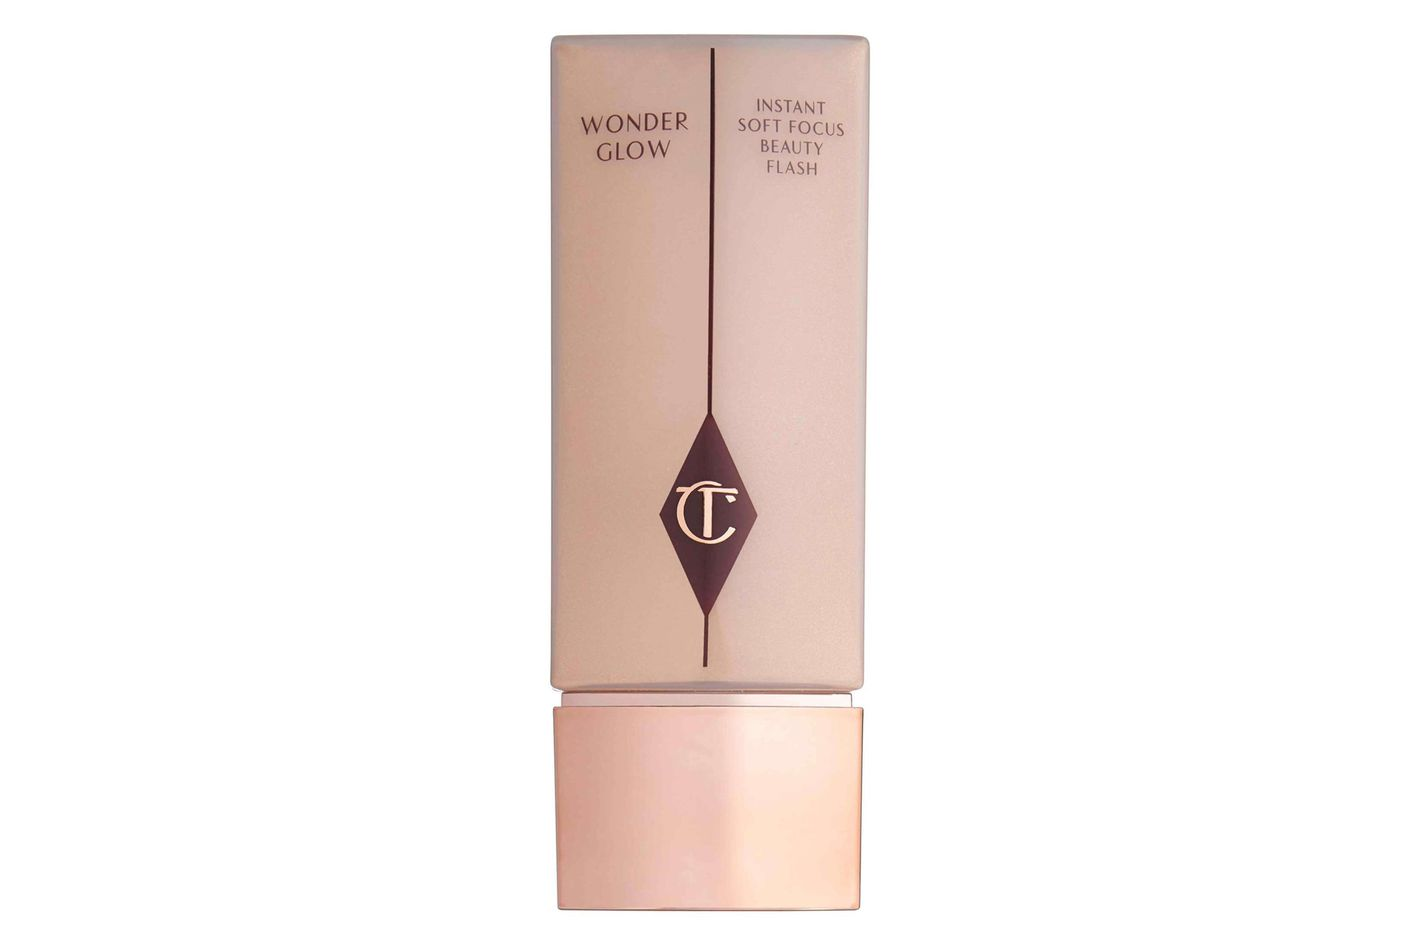 Charlotte Tilbury 'Wonderglow' Instant Soft-Focus Beauty Flash